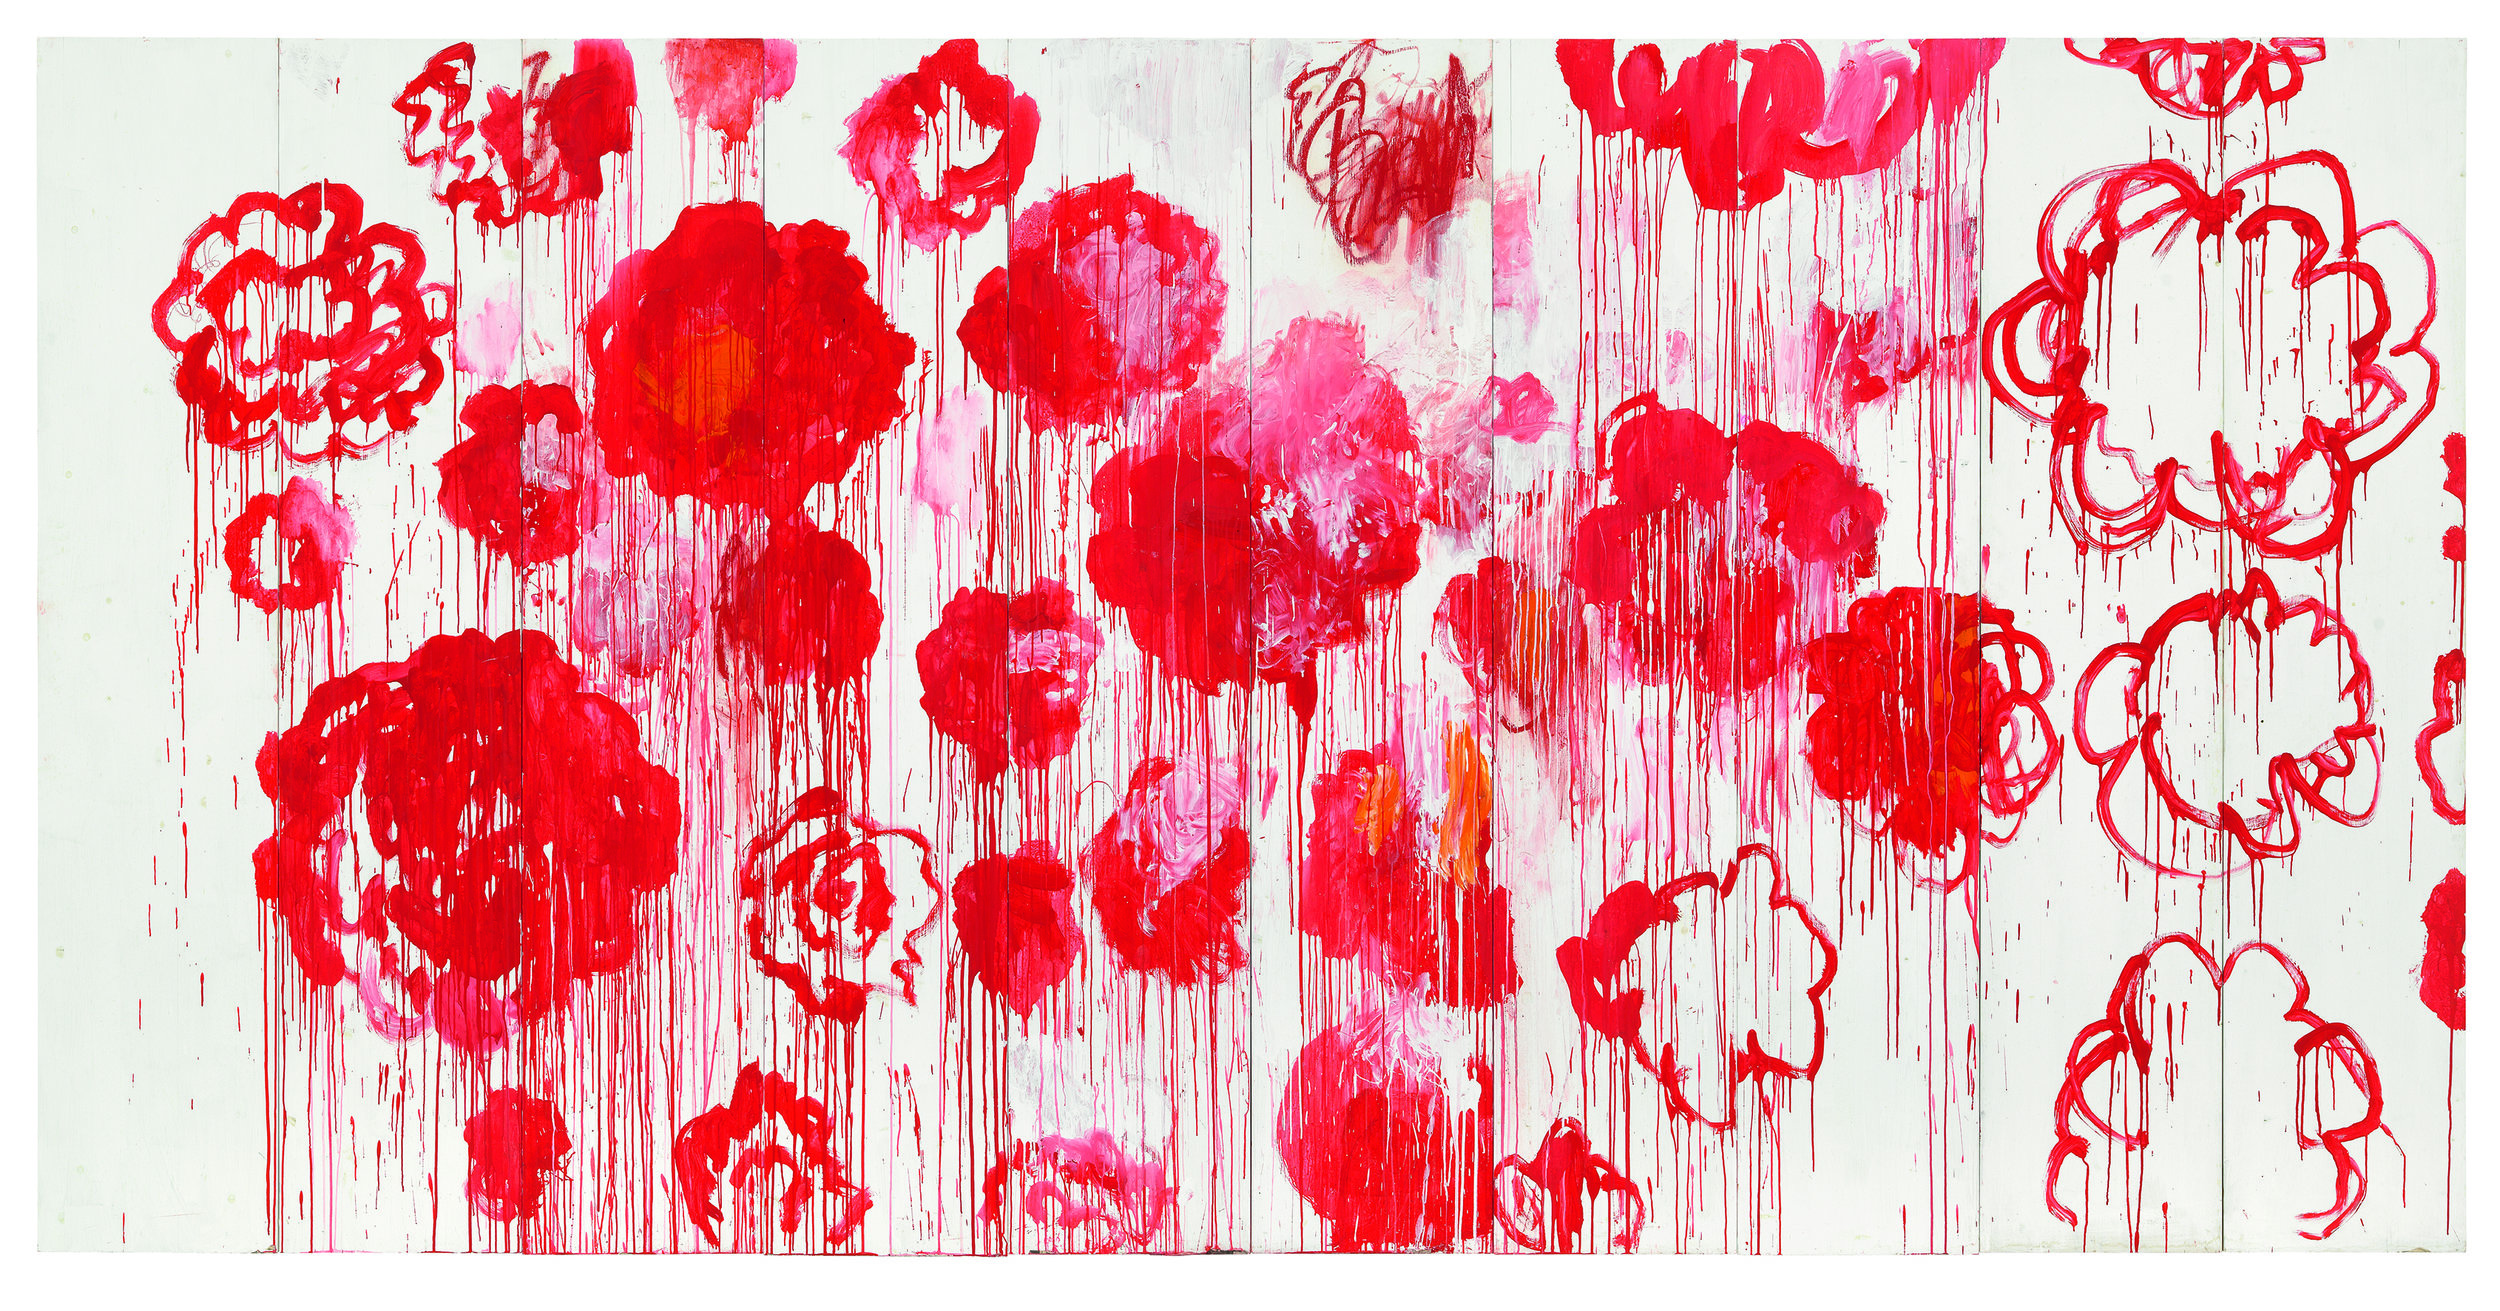 Blooming, 2001-2008, by Cy Twombly.  Photograph: © Cy Twombly Foundation